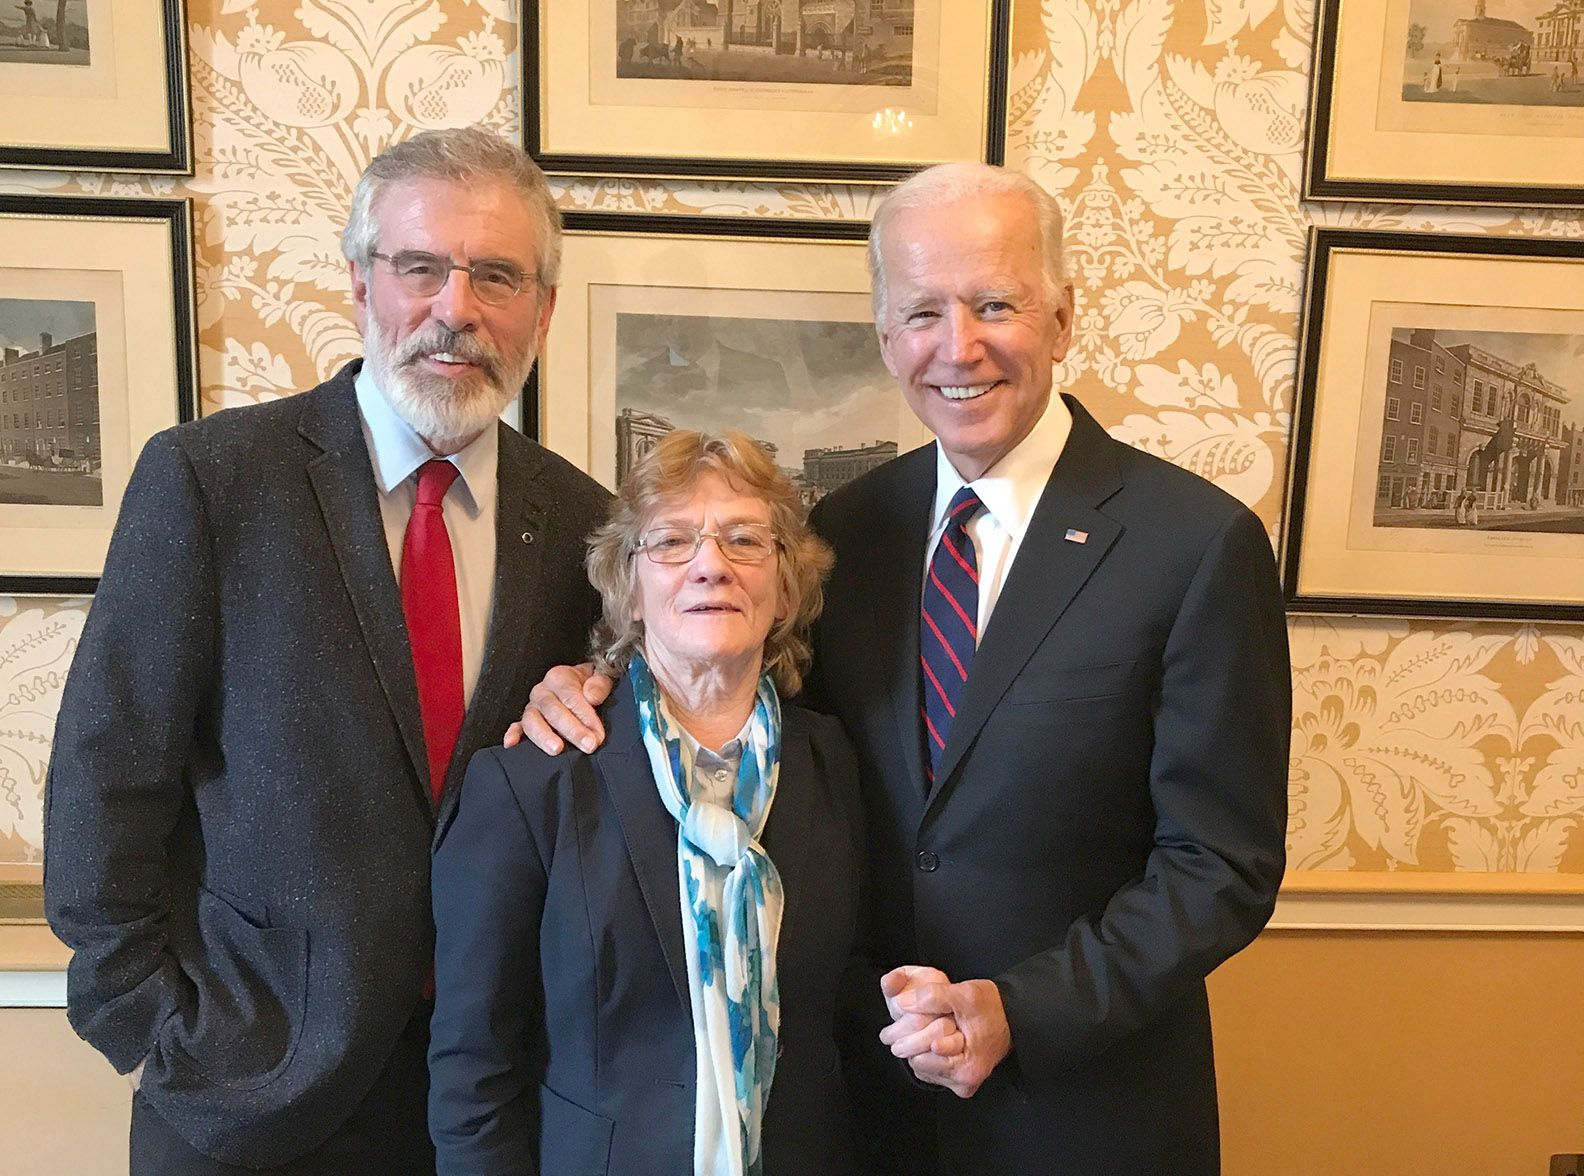 VICTOR:Gerry Adams with Joe Biden and Rita O'Hare – the President elect is a friend of Ireland